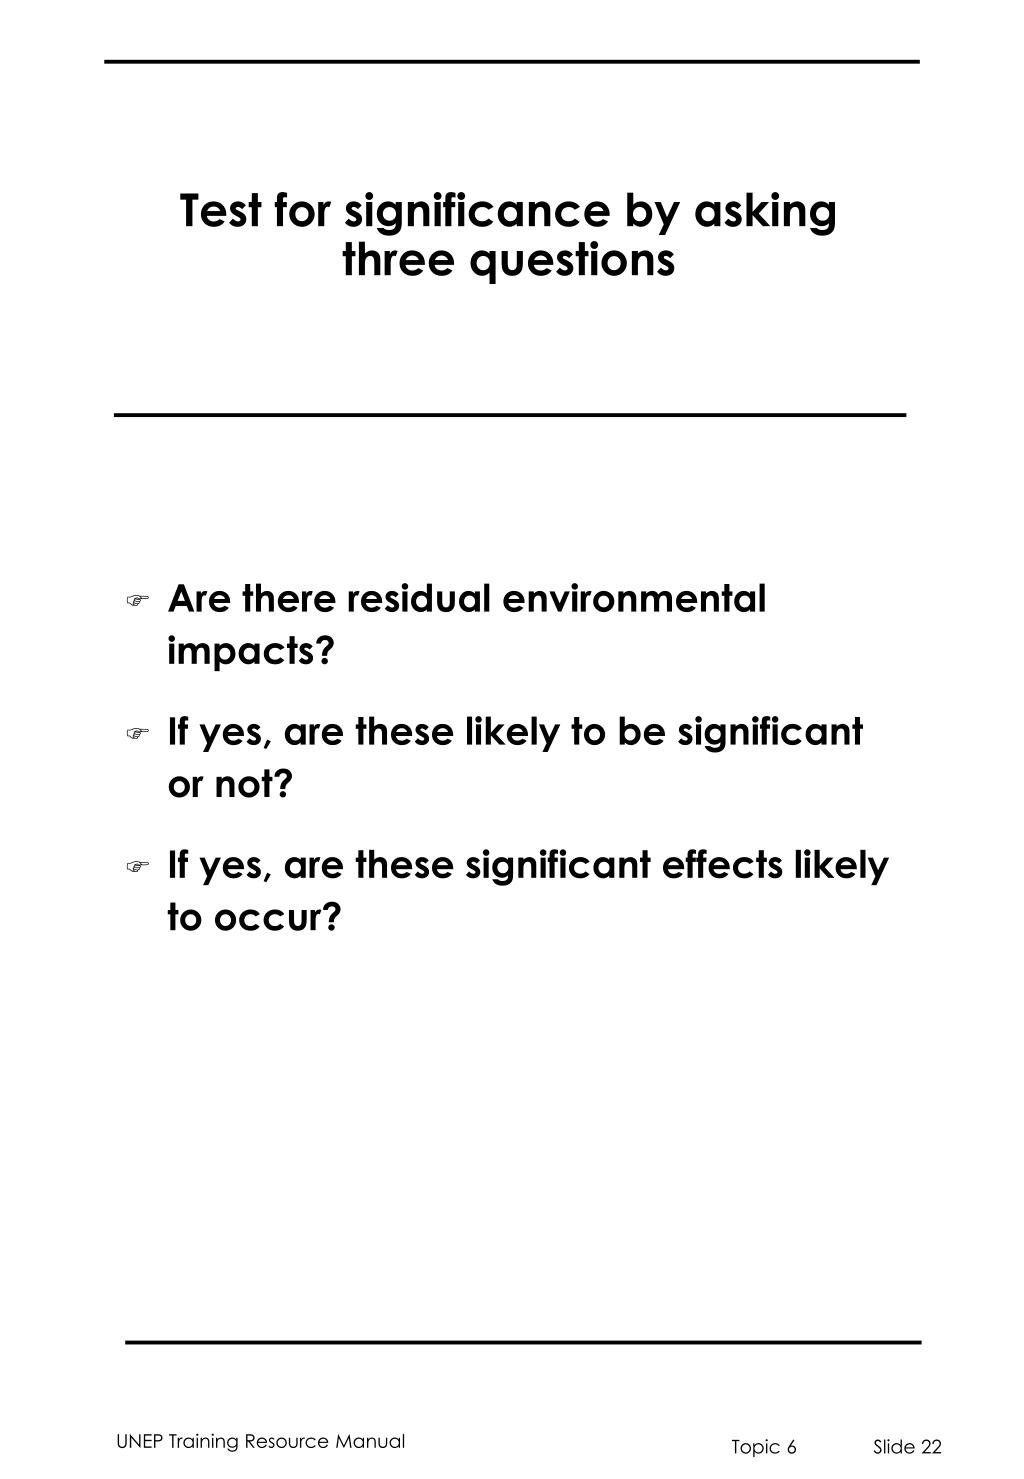 Test for significance by asking three questions